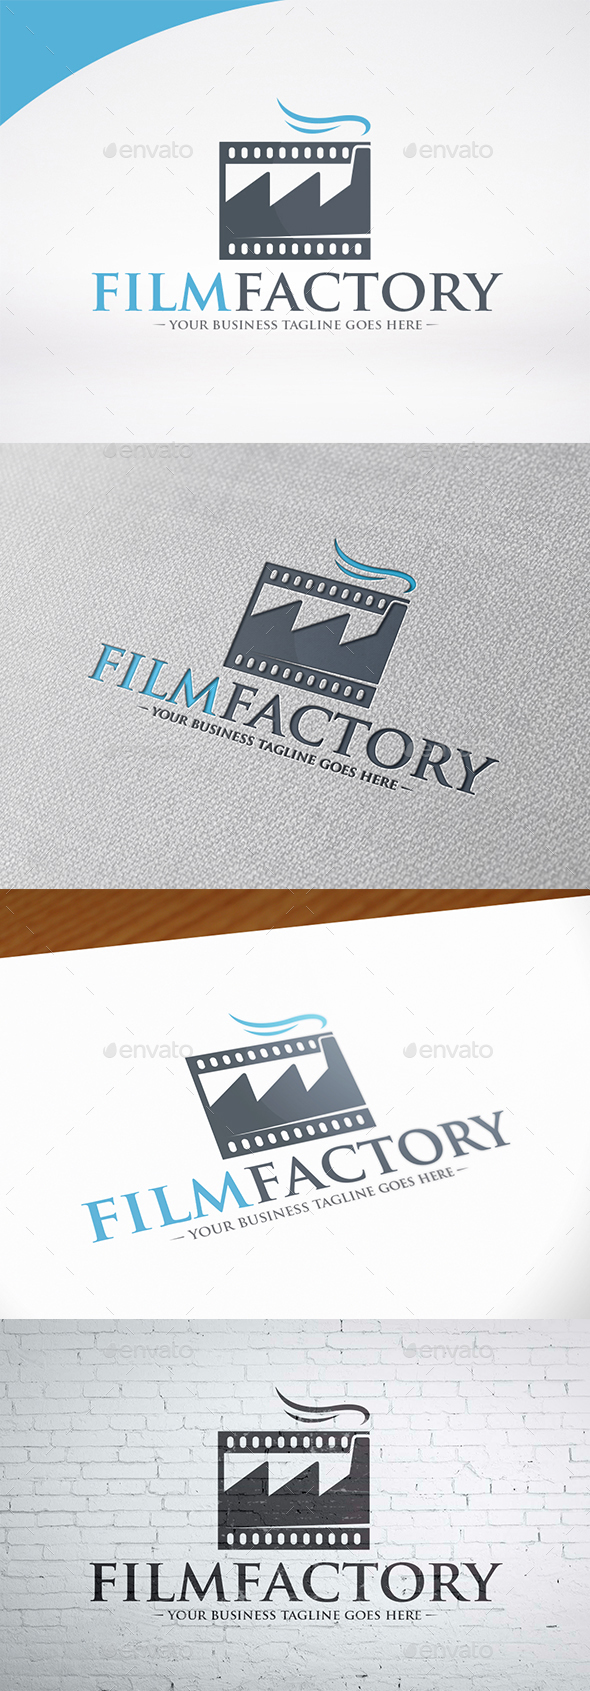 Movie Industry Logo Template